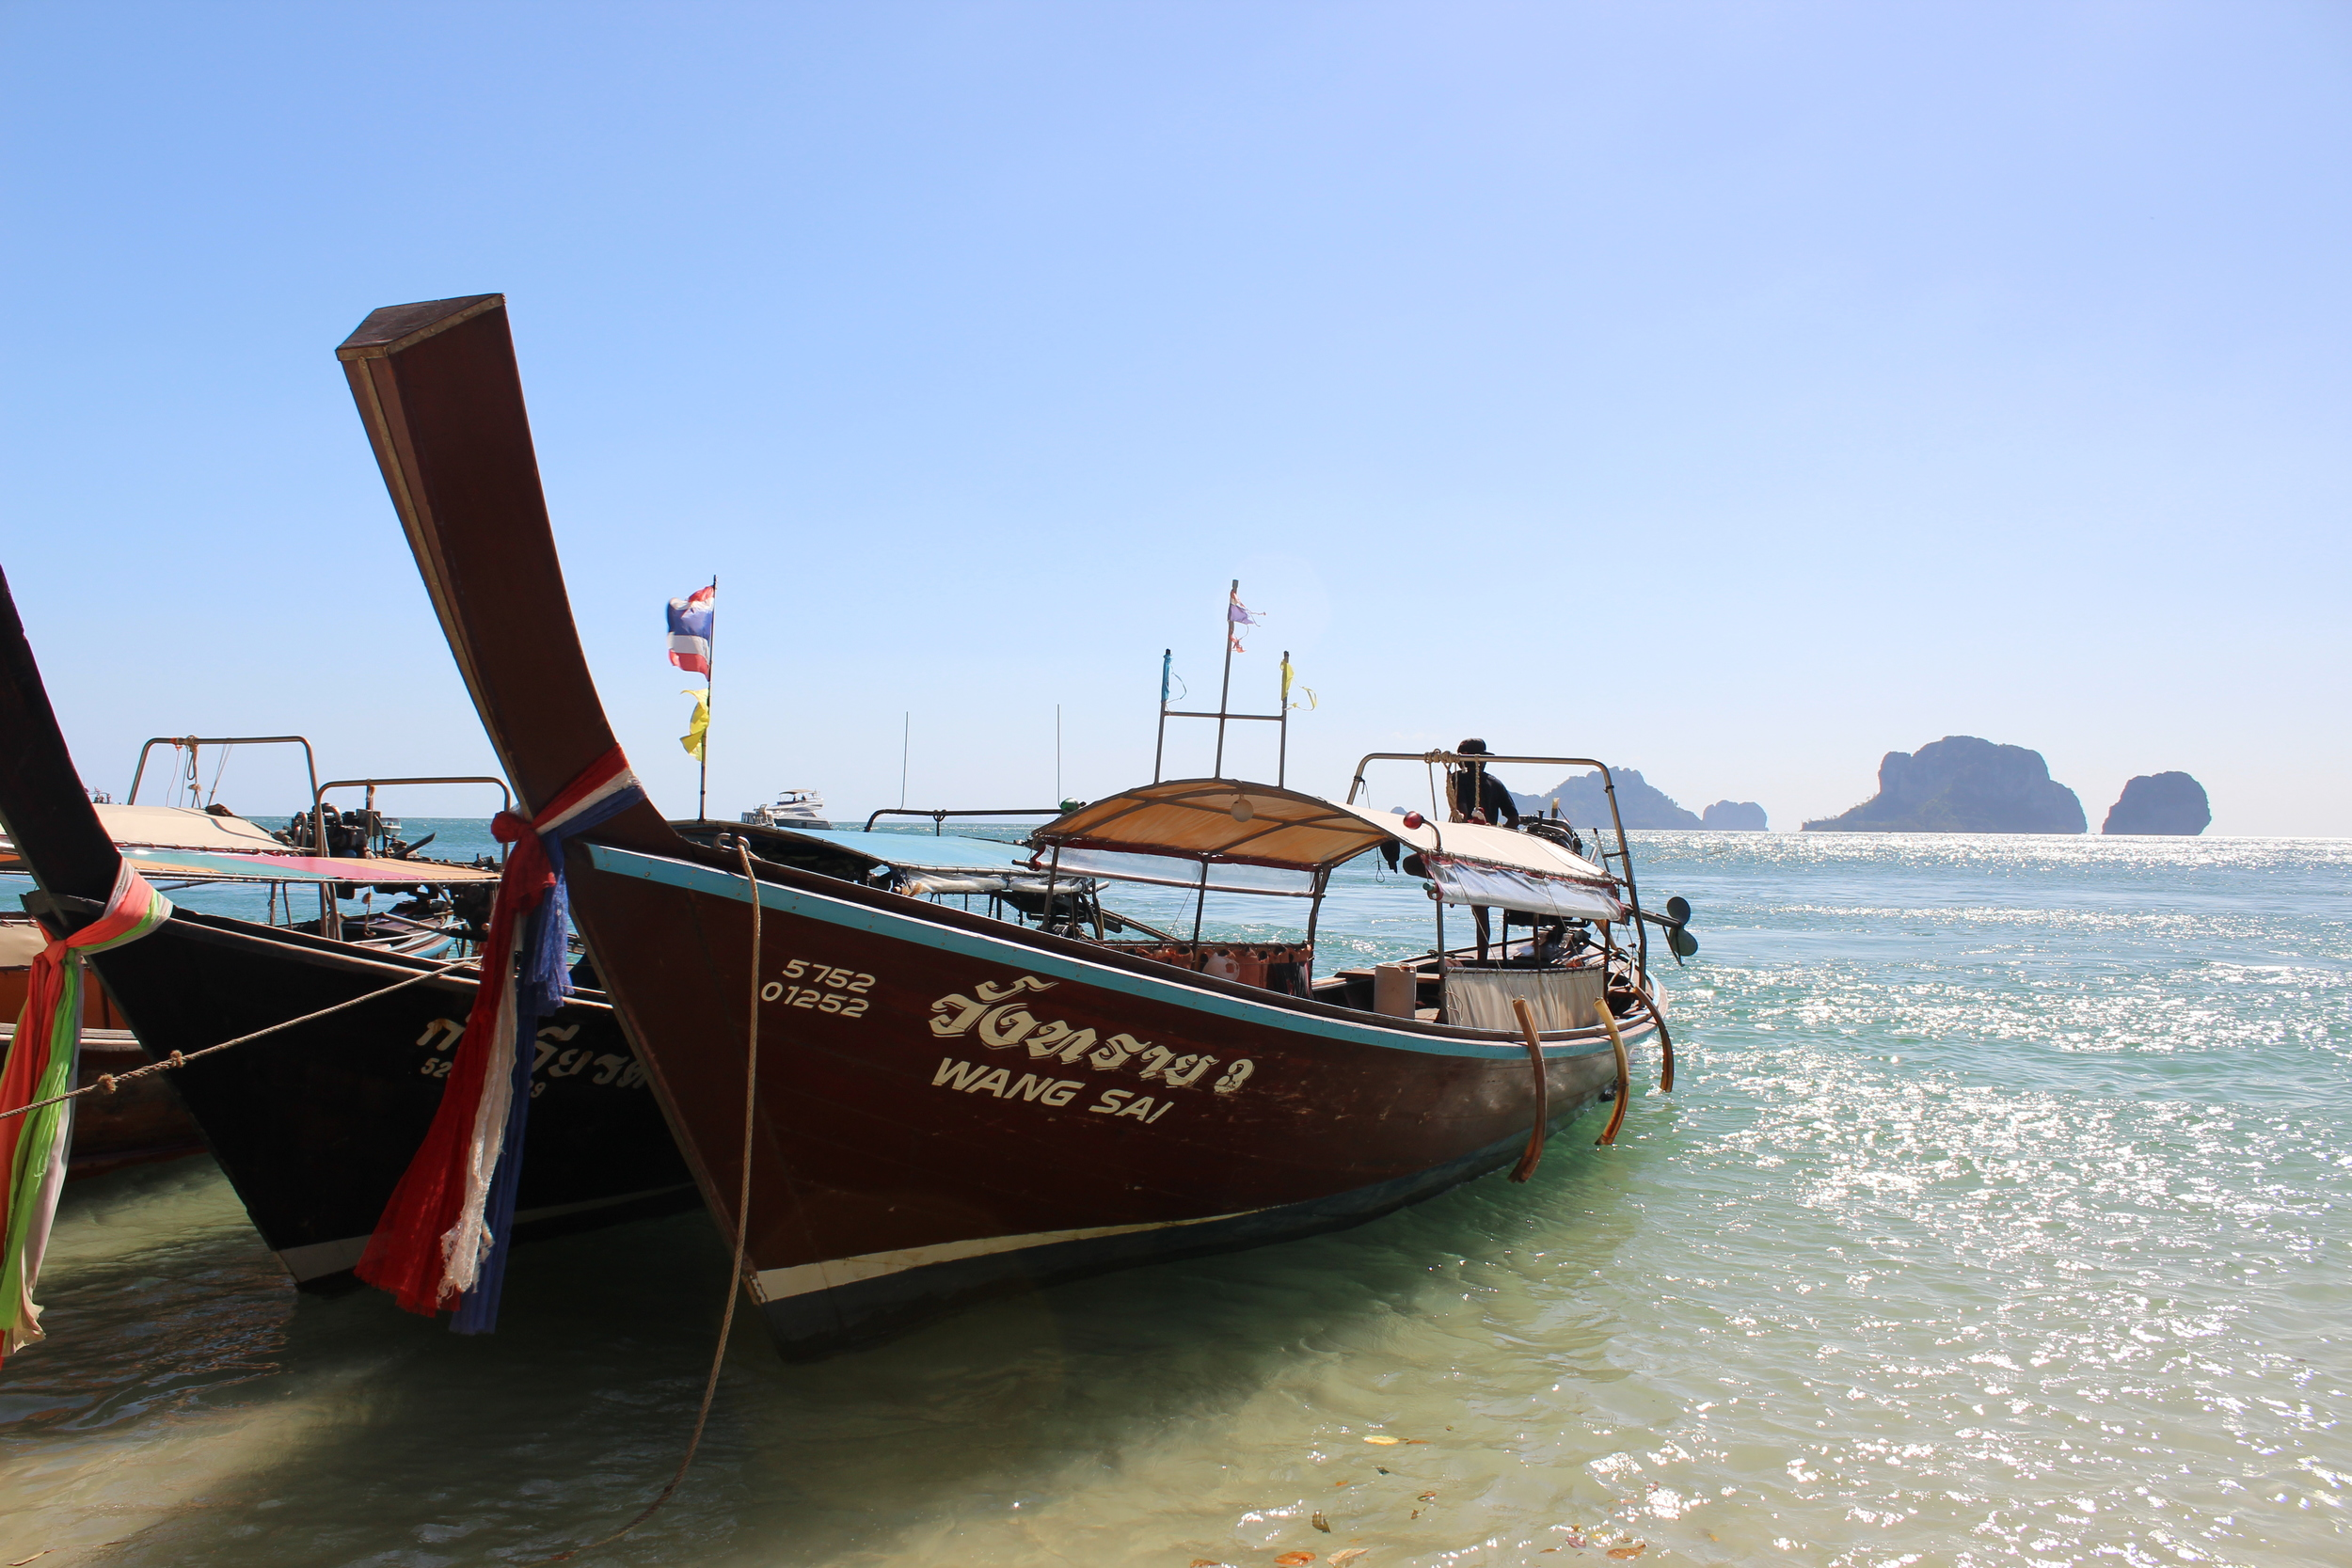 Thai boats are great to photograph, because they are the only place people aren't